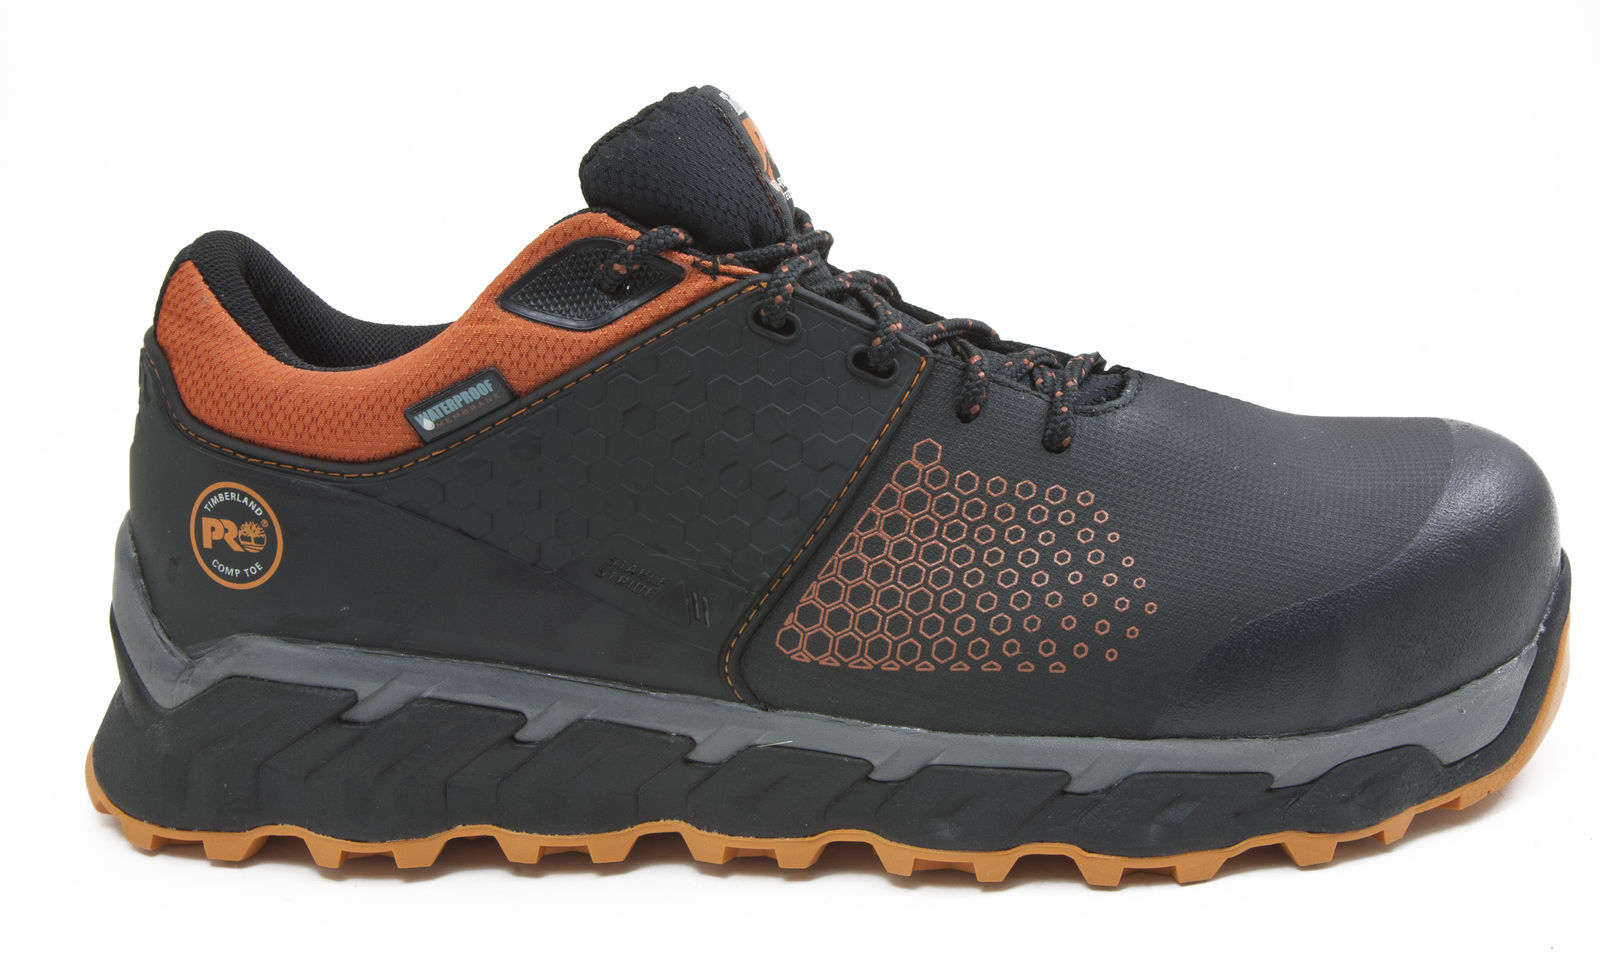 b6b82d5bbfd Details about Timberland PRO A1Q2P001 Ridgework Low Composite Safety Toe  Waterproof Work Shoe